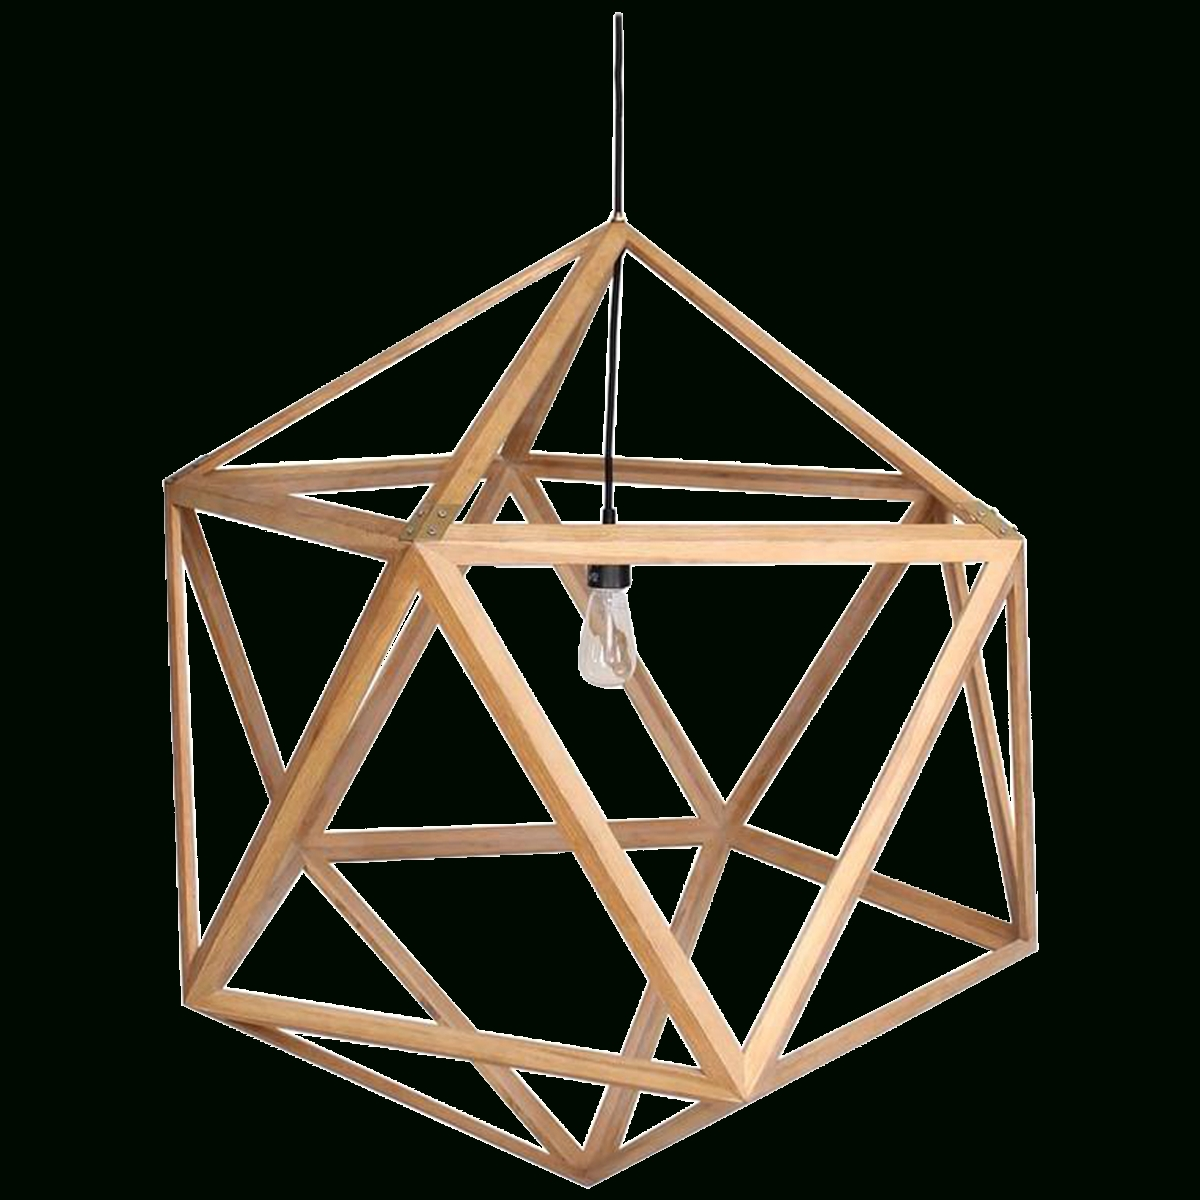 Viyet - Designer Furniture - Lighting - Modern Wood Dodecahedron for Dodecahedron Pendant Lights (Image 15 of 15)